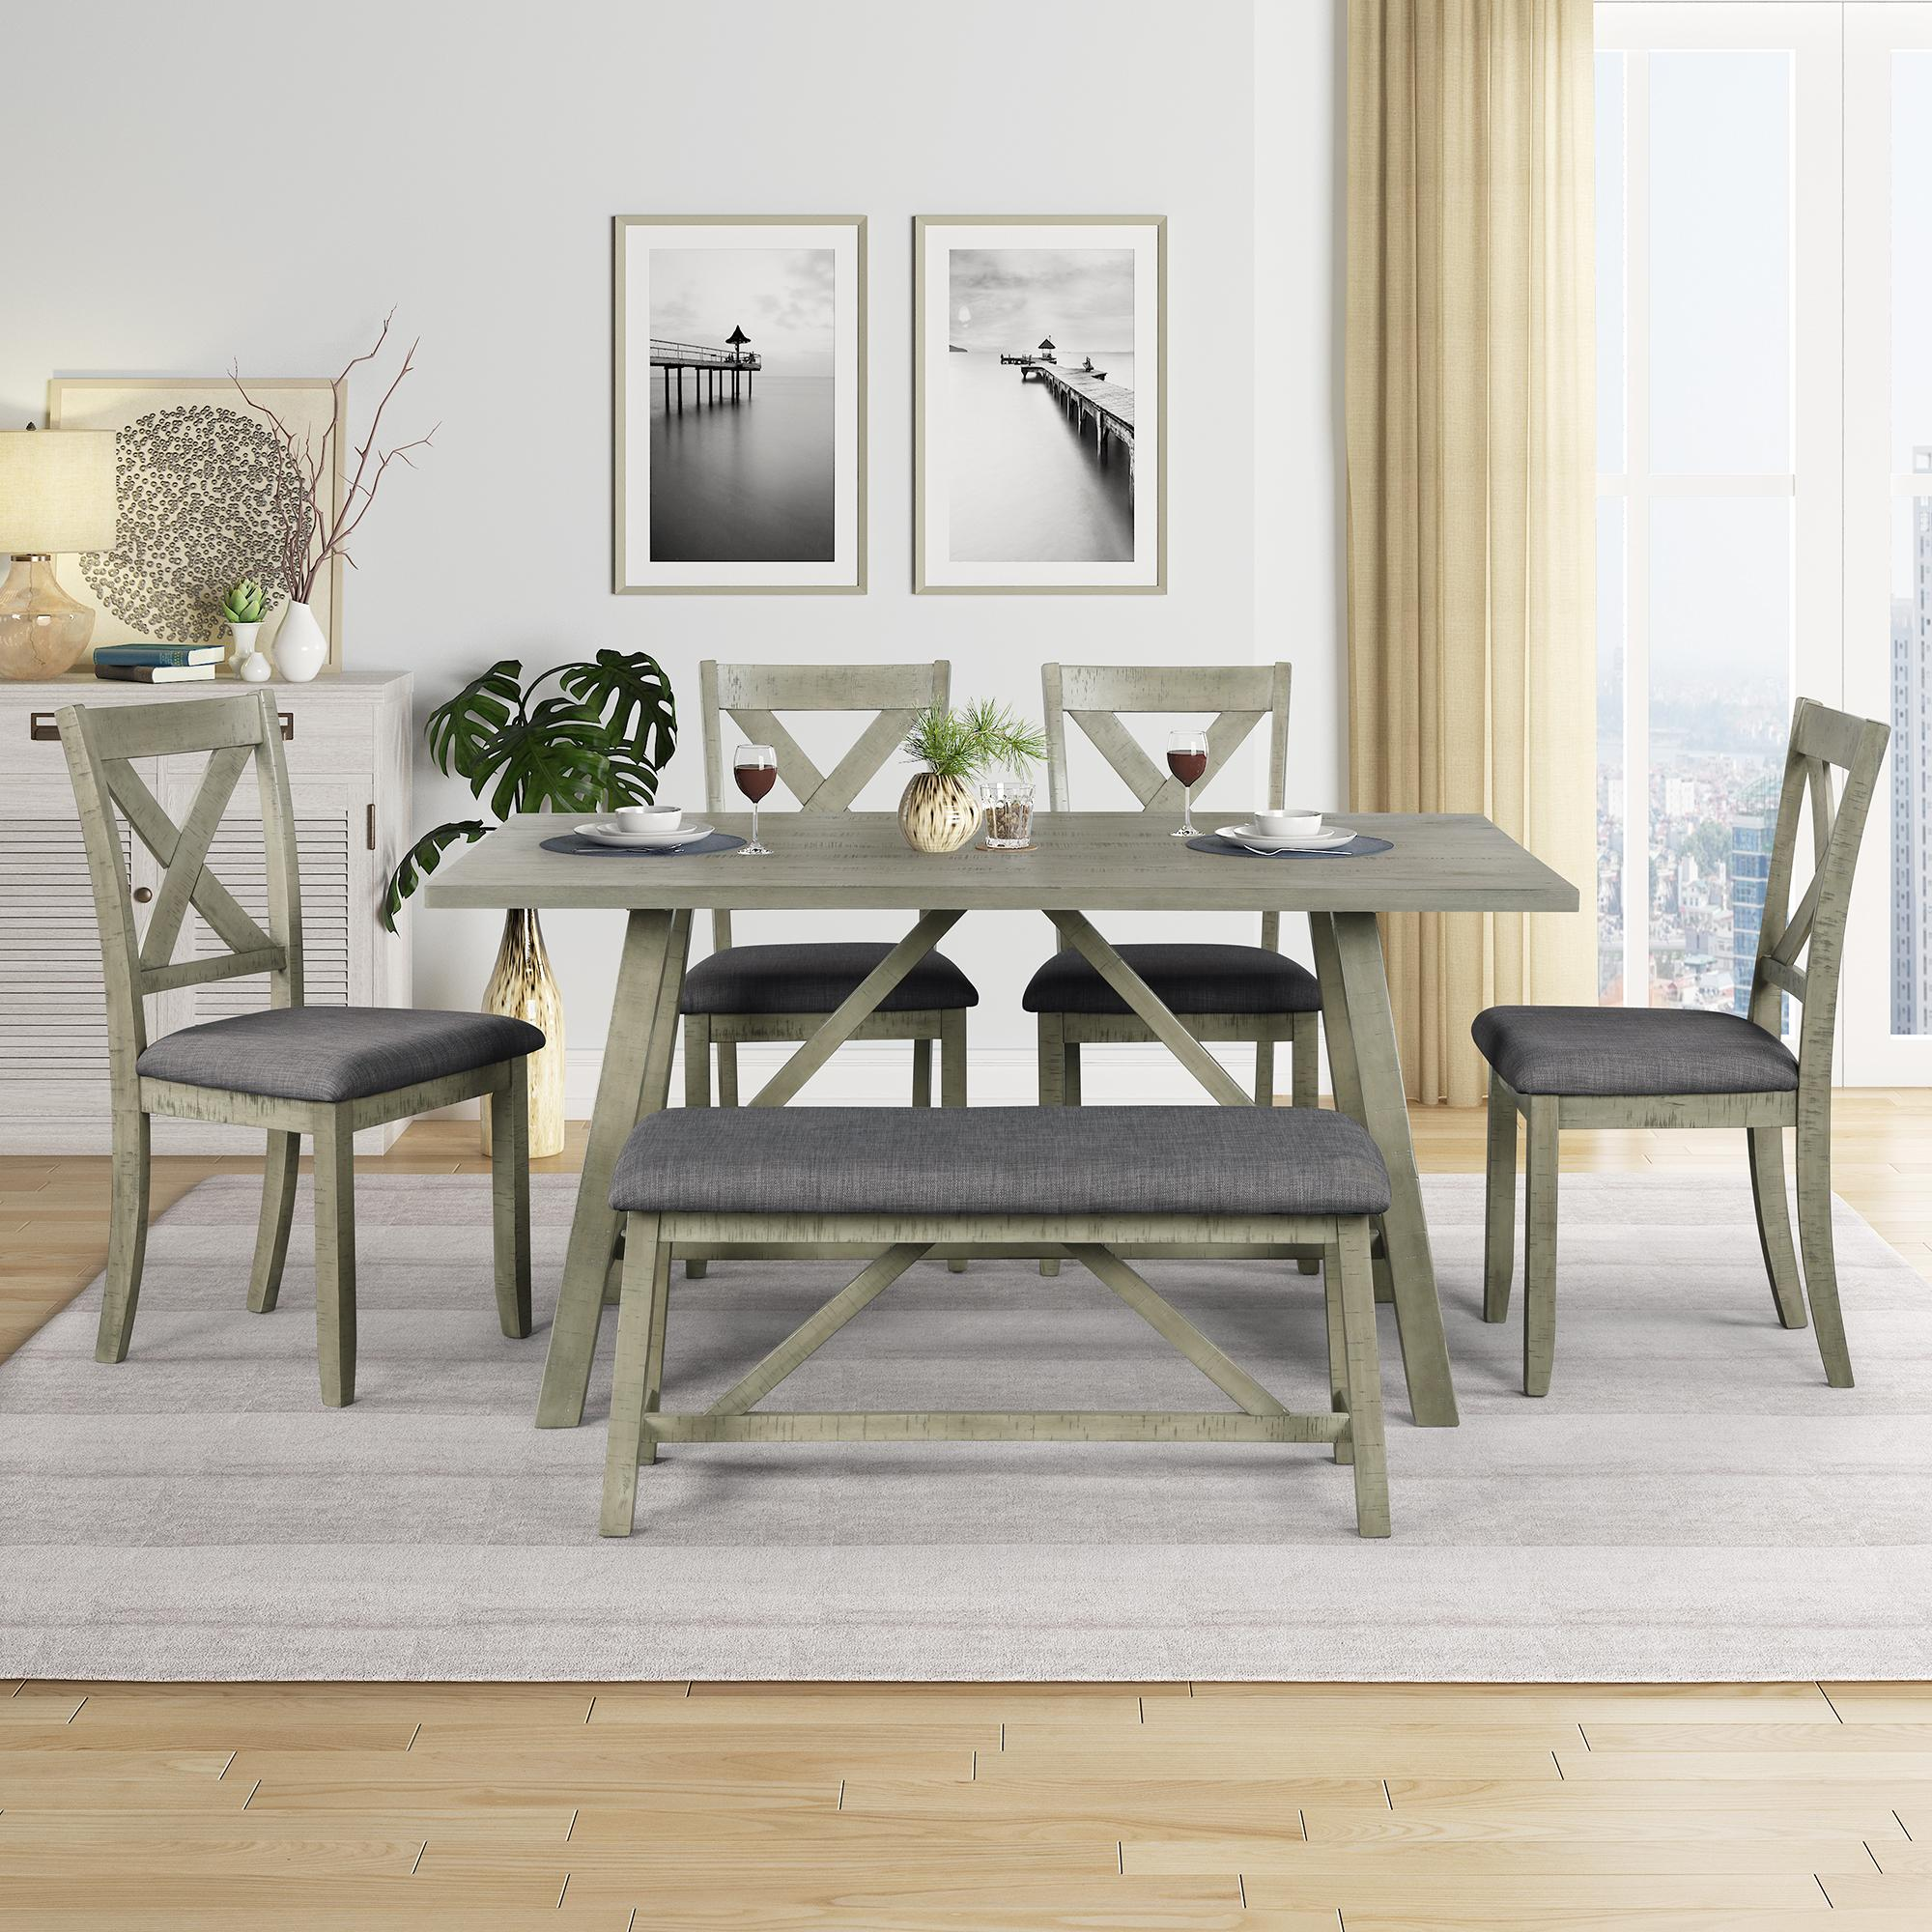 Picture of: 2020 Gray Dining Table Set Wood Dining Table And Chair Kitchen Table Set With Table Bench And 4 Chairs Rustic Style Sh000109aae From Topbriliant2020 716 65 Dhgate Com